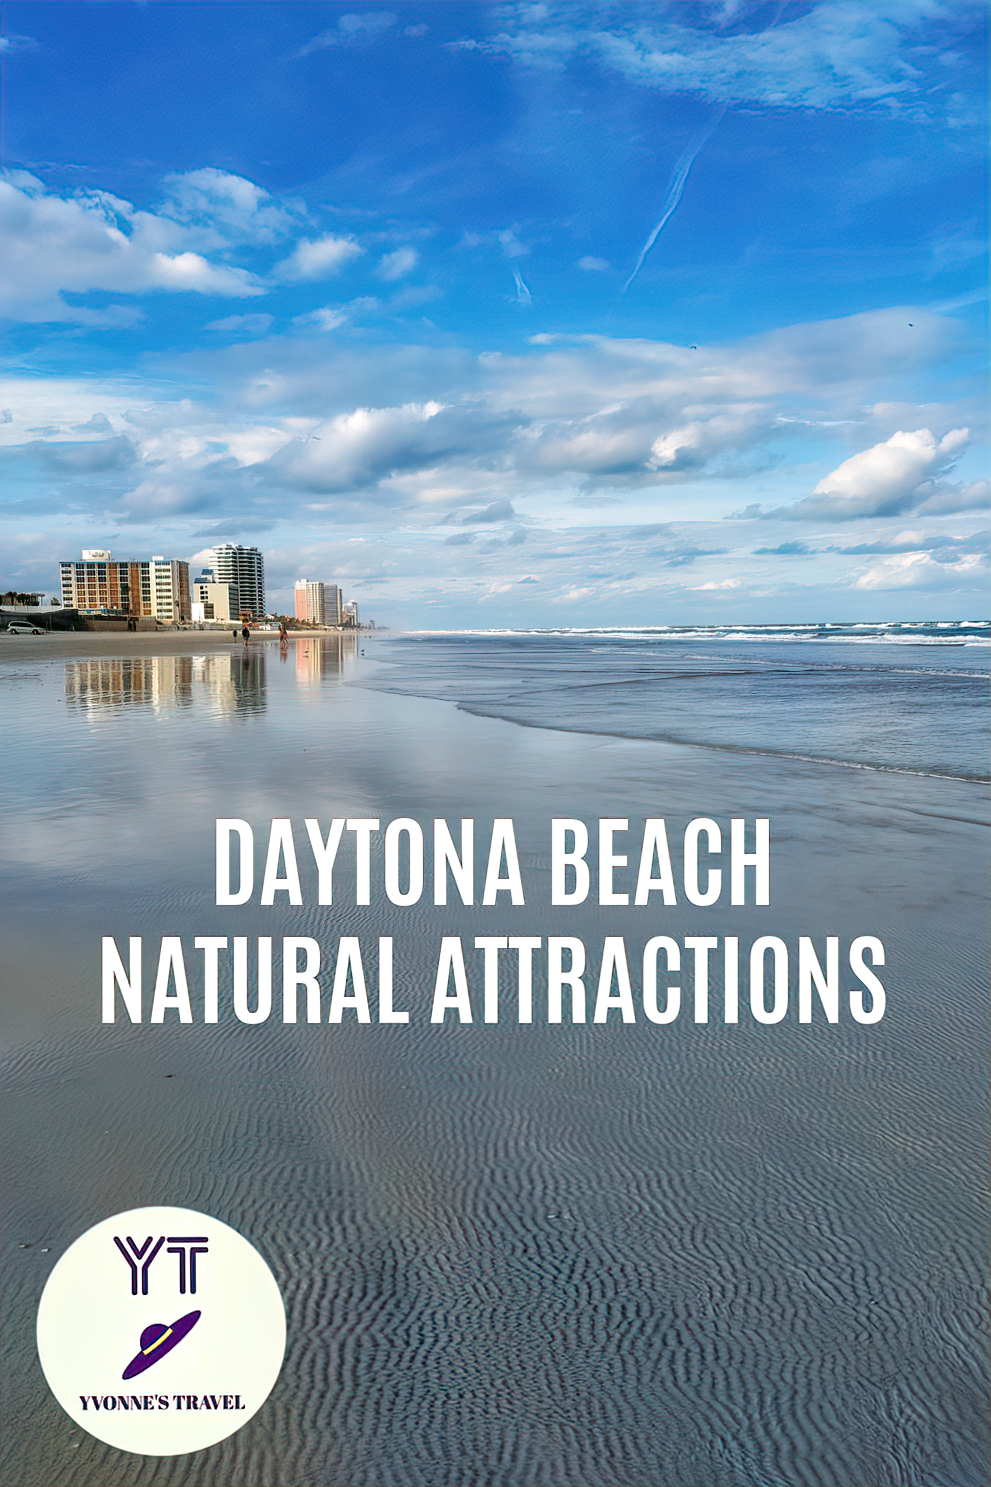 Are you curious about what to do in Daytona Beach, Florida, beyond the beach? Discover these beautiful state parks nearby. #daytonabeach #floridastateparks #nauralattractionsindaytonabeach